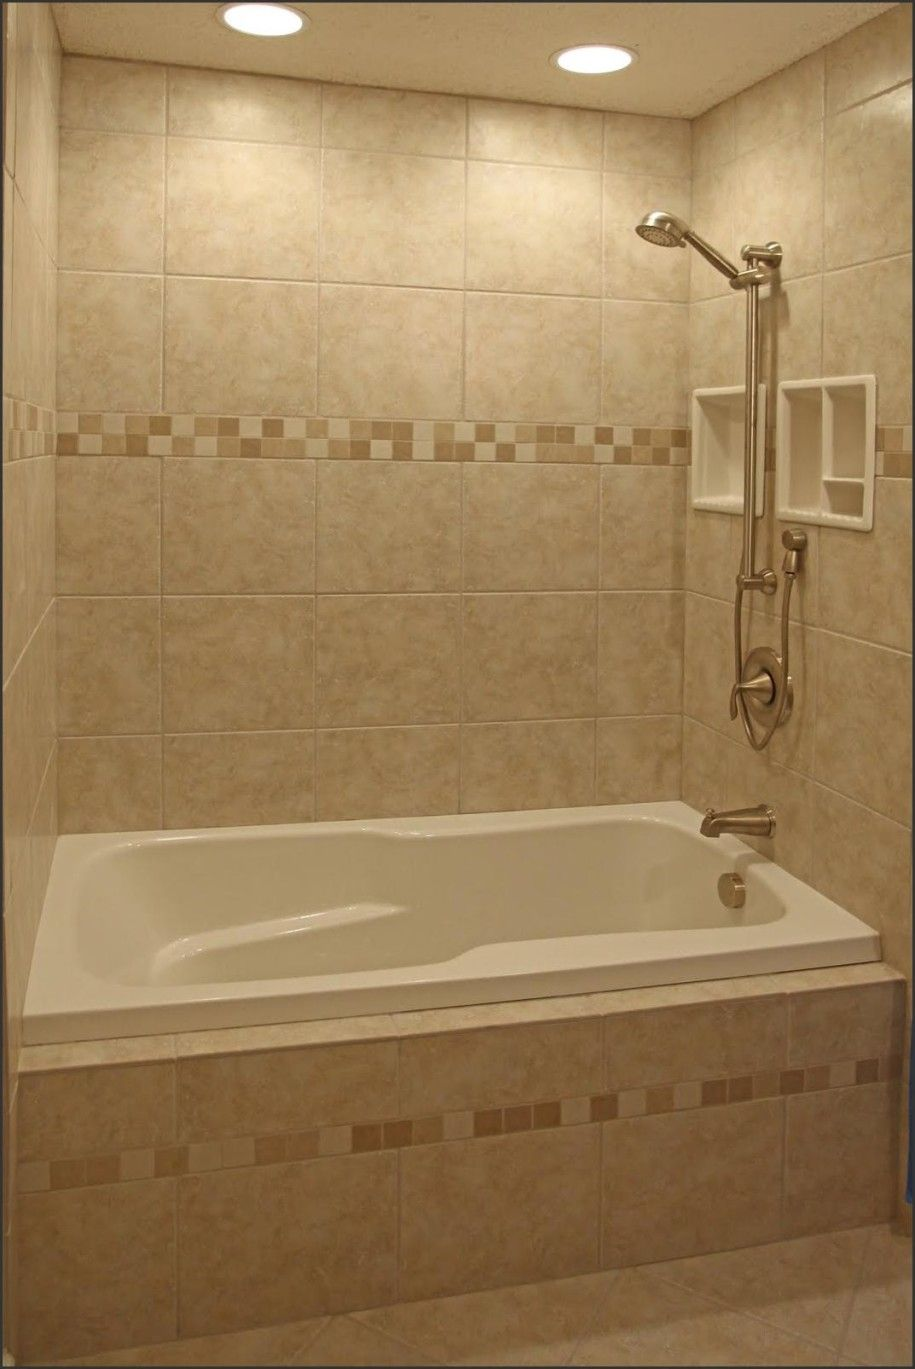 Small Bathroom With Alcove Bathtub Shower Combo And LimeStone Wall - Lighting ideas for small bathrooms